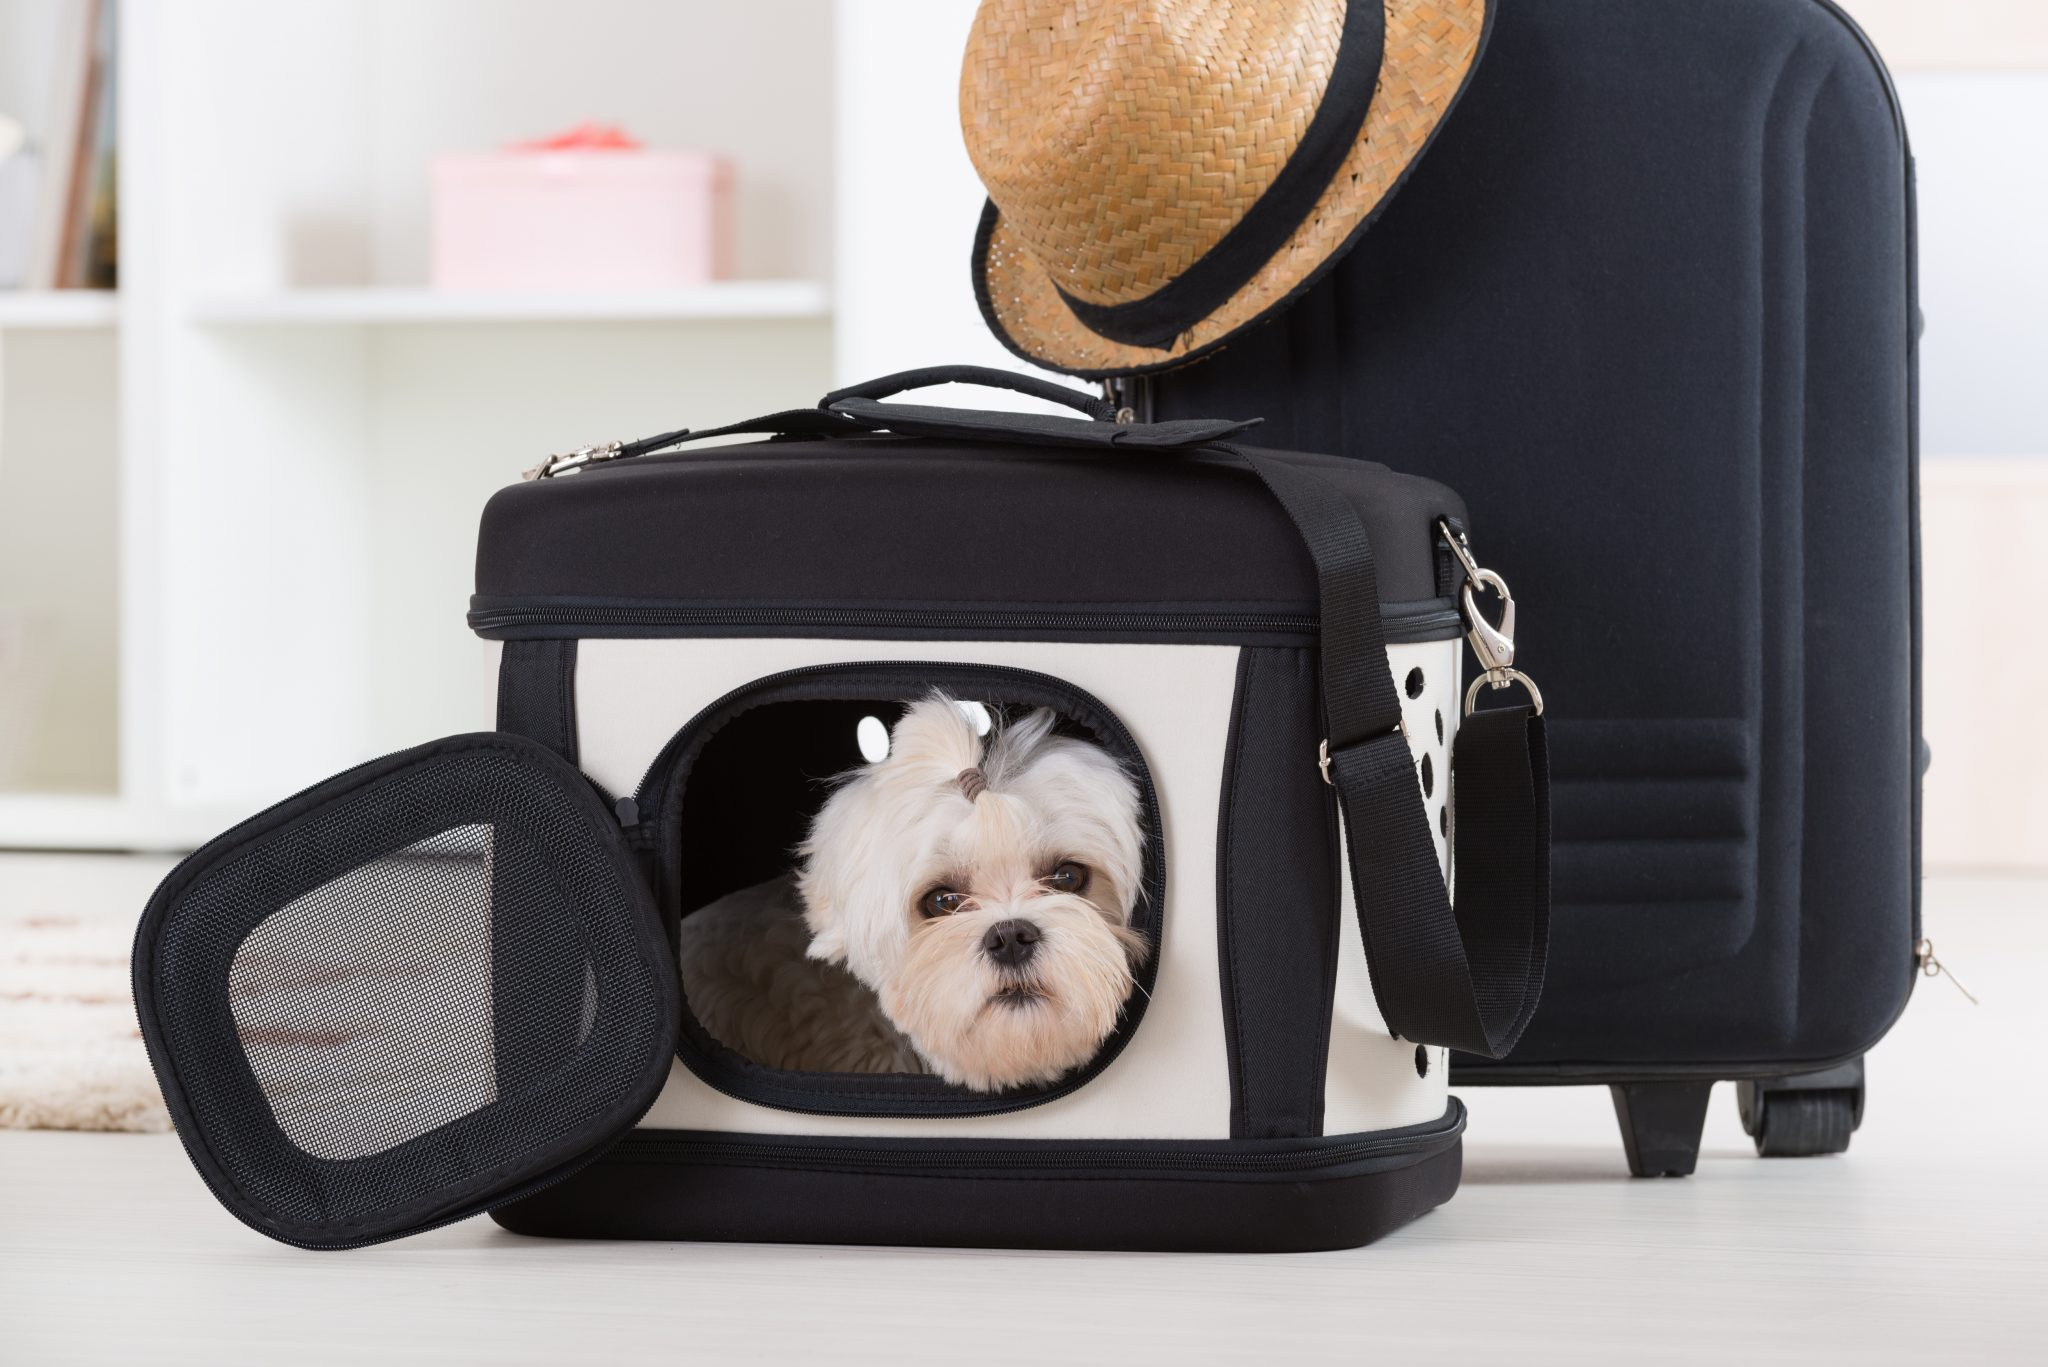 How To Enjoy Going Away Without Your Dog {GoingAwayWithoutYourDog} #GoingAwayWithoutYourDog #GoingAway #NoDog www.scruffylittleterrier.com